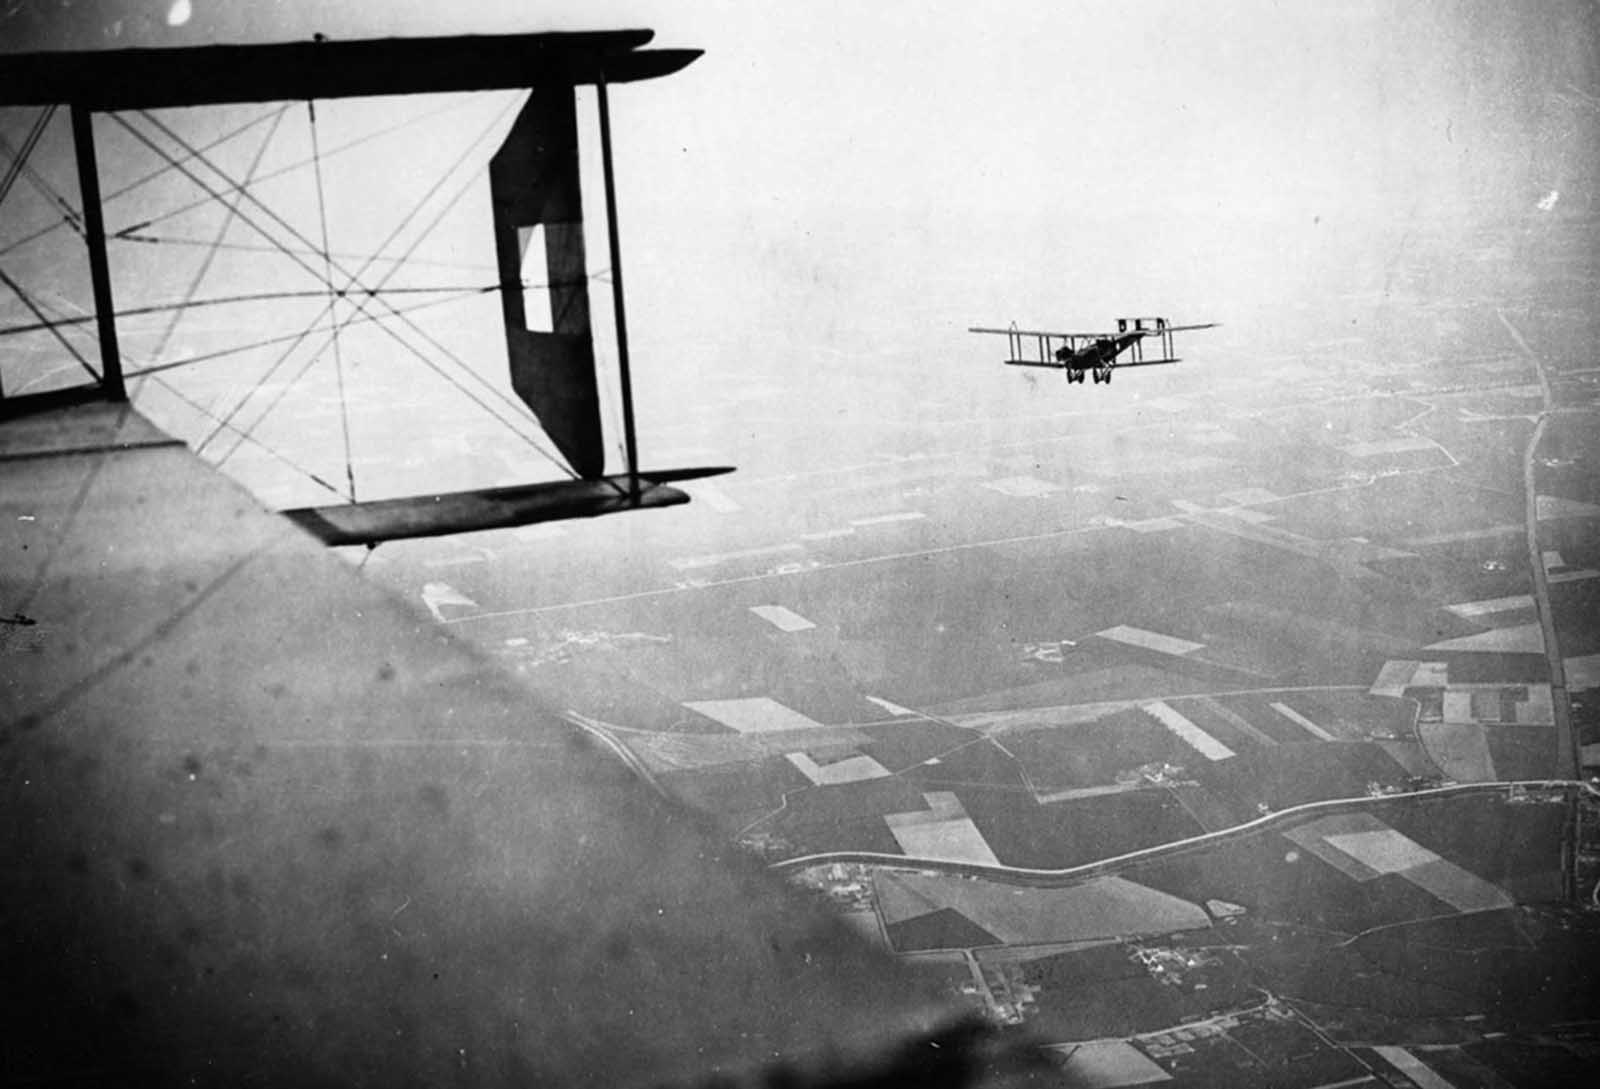 British Handley-Page bombers on a mission, Western Front, during World War I. This photograph, which appears to have been taken from the cabin of a Handley-Page bomber, is attributed to Tom Aitken. It shows another Handley-Page bomber setting out on a bombing mission. The model 0/400 bomber, which was introduced in 1918, could carry 2,000 lbs (907 kilos) of bombs and could be fitted with four Lewis machine-guns.